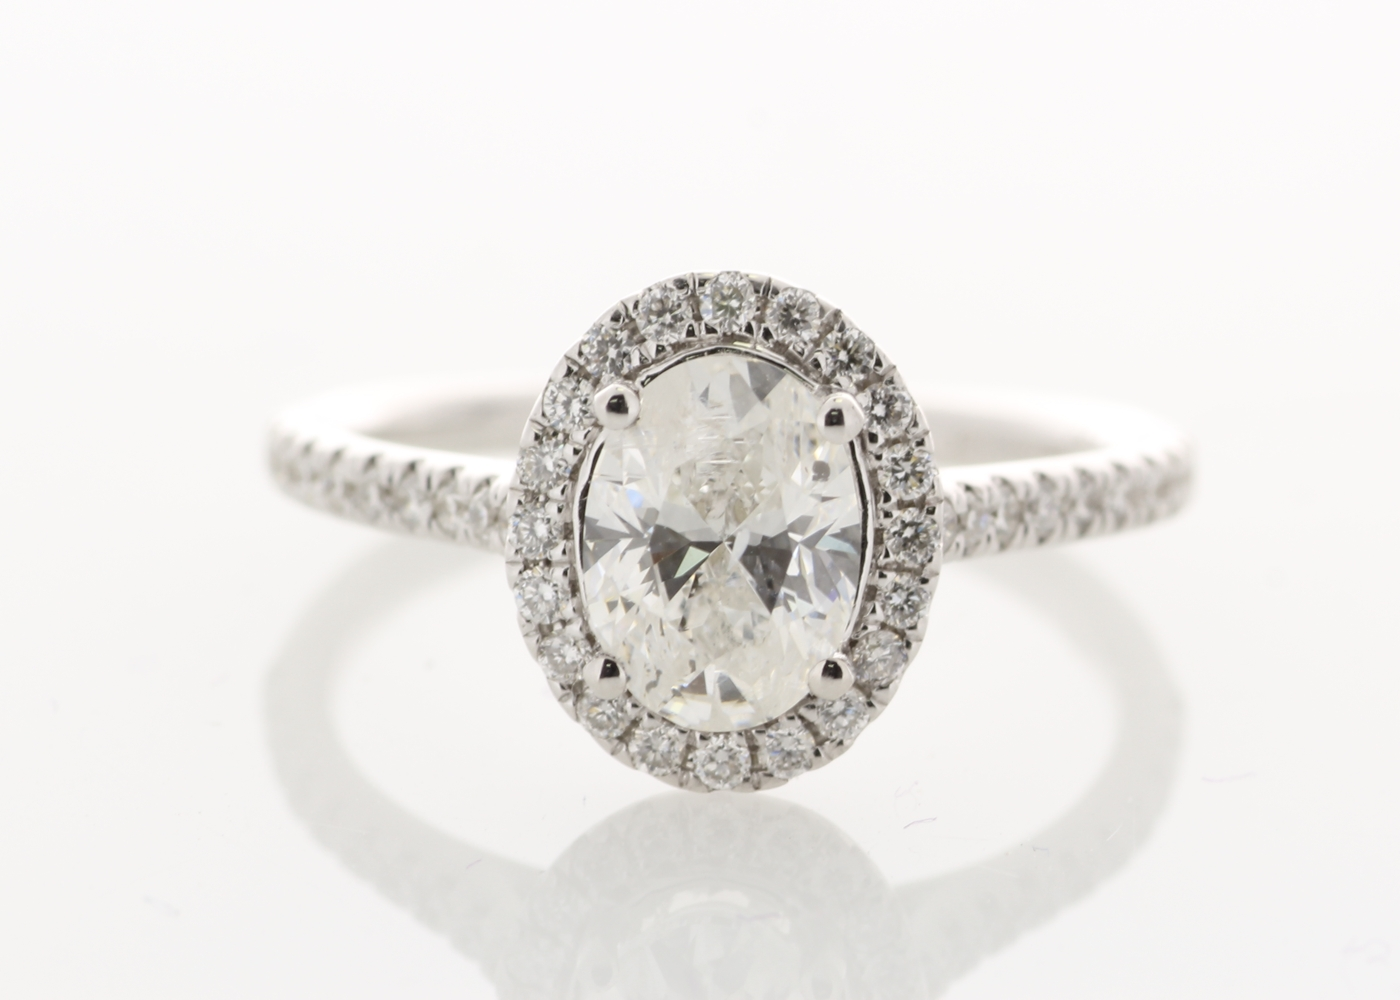 Lot 24 - 18ct White Gold Halo Set Ring 1.28 Carats